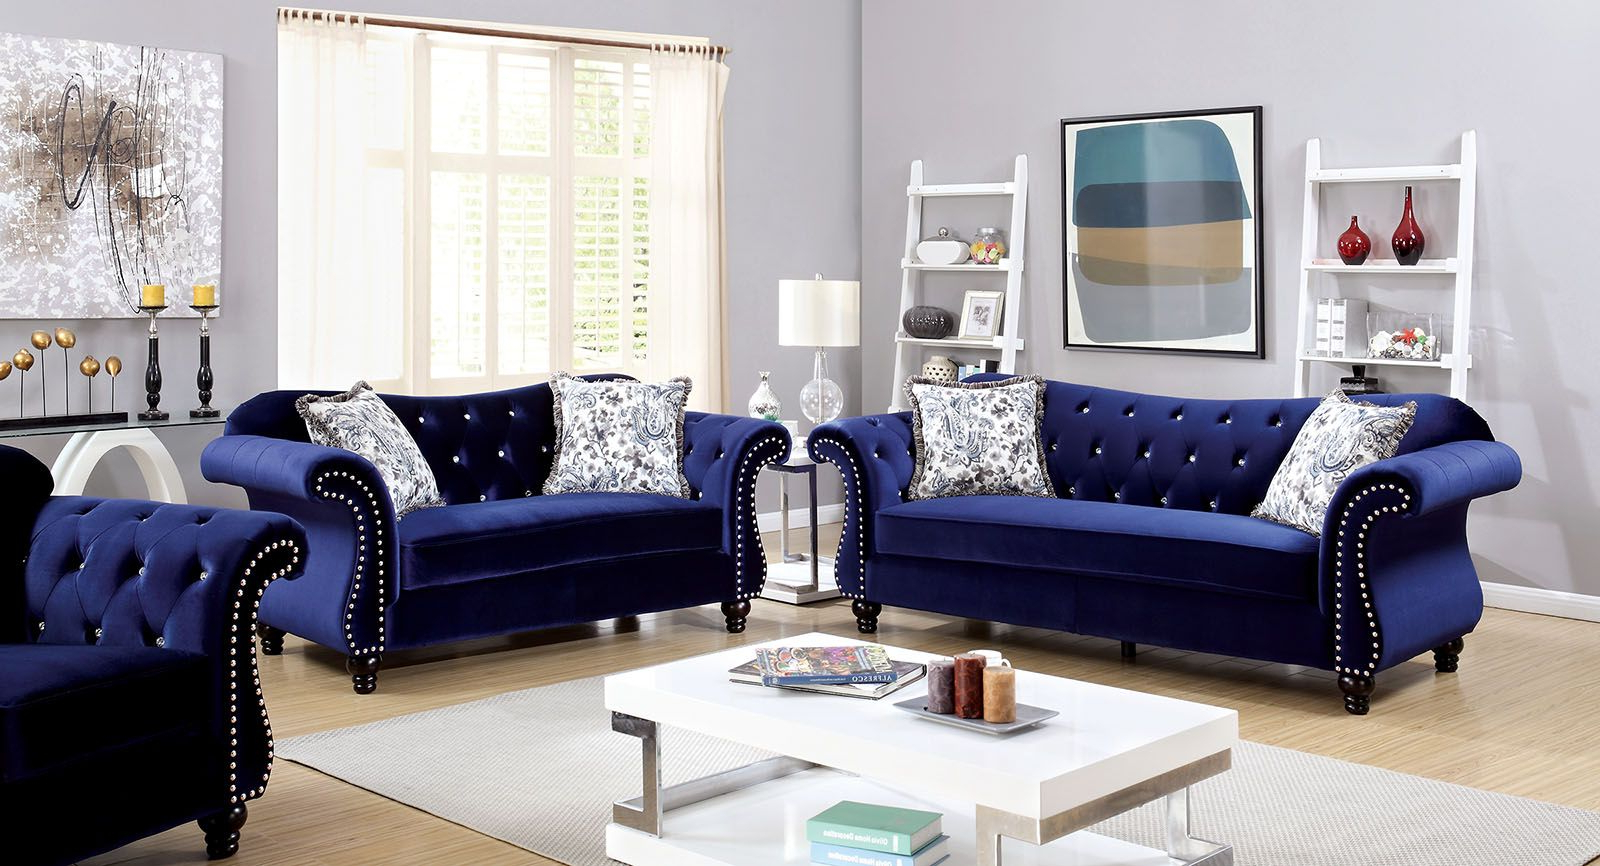 Current Furniture Of America Jolanda Blue Flannelette Fabric Intended For Molnar Upholstered Sectional Sofas Blue/Gray (View 19 of 25)